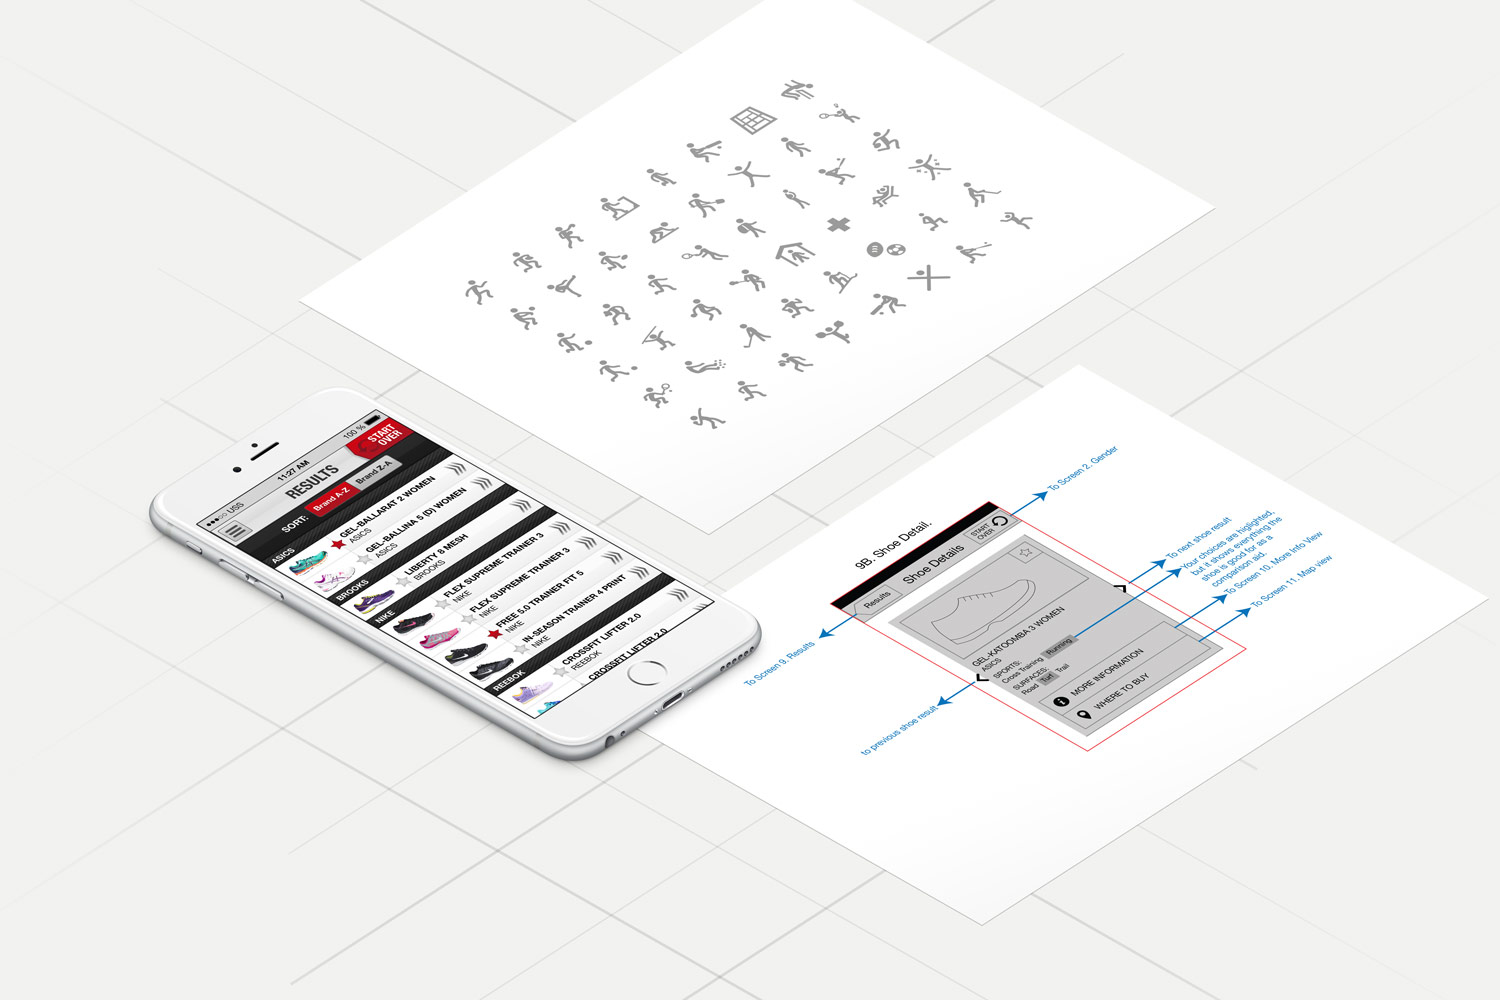 Ultimate Shoe Selector - Digital Product Design by Theysaurus